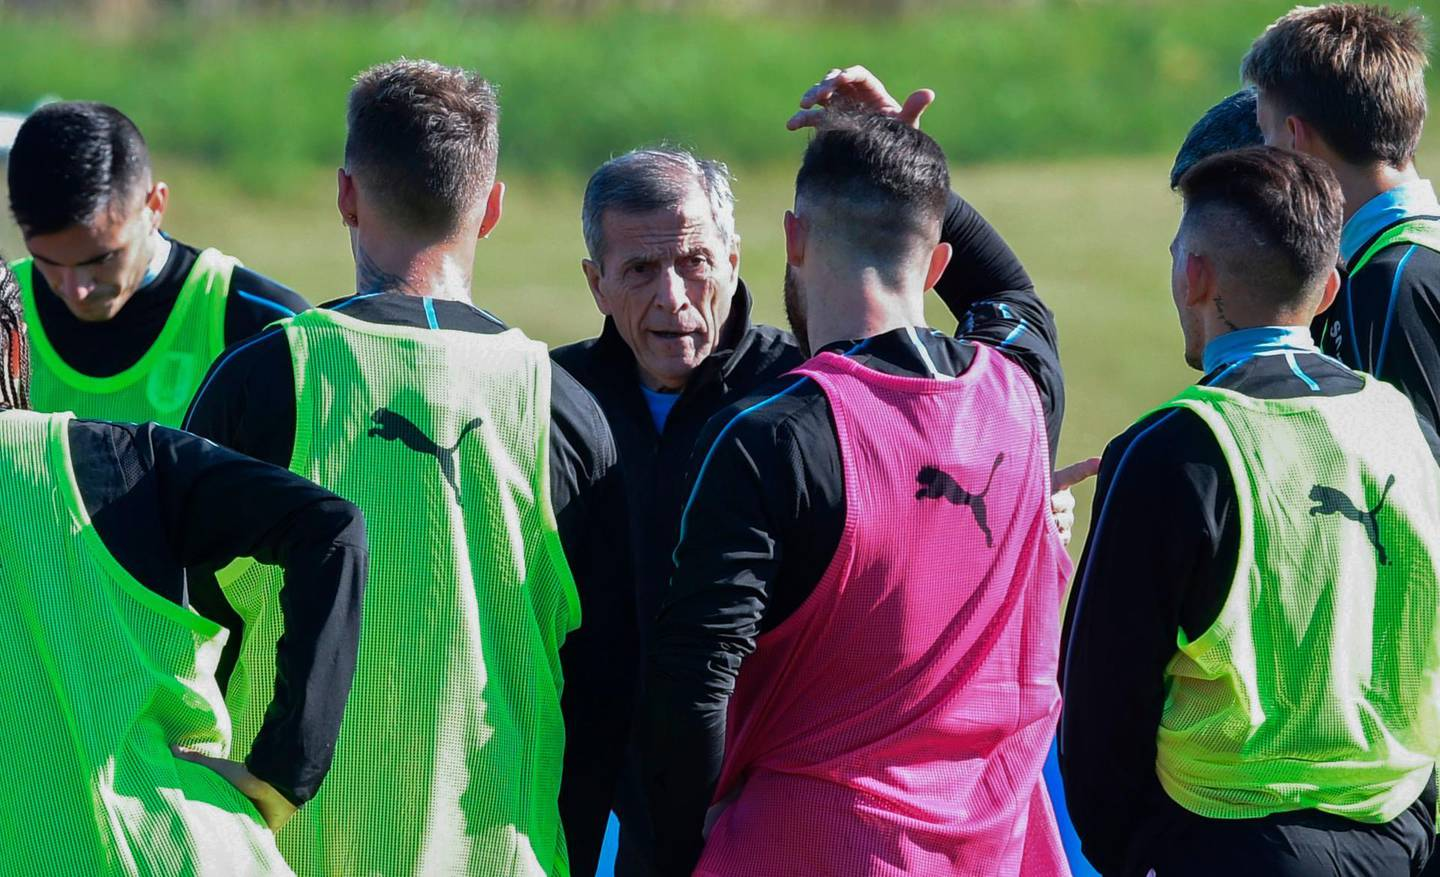 Uruguay's national team coach Oscar Washington Tabarez speaks with his footballers during a training session ahead of the FIFA World Cup 2018, at the Complejo Celeste training center in Montevideo, on May 24, 2018. / AFP / MIGUEL ROJO